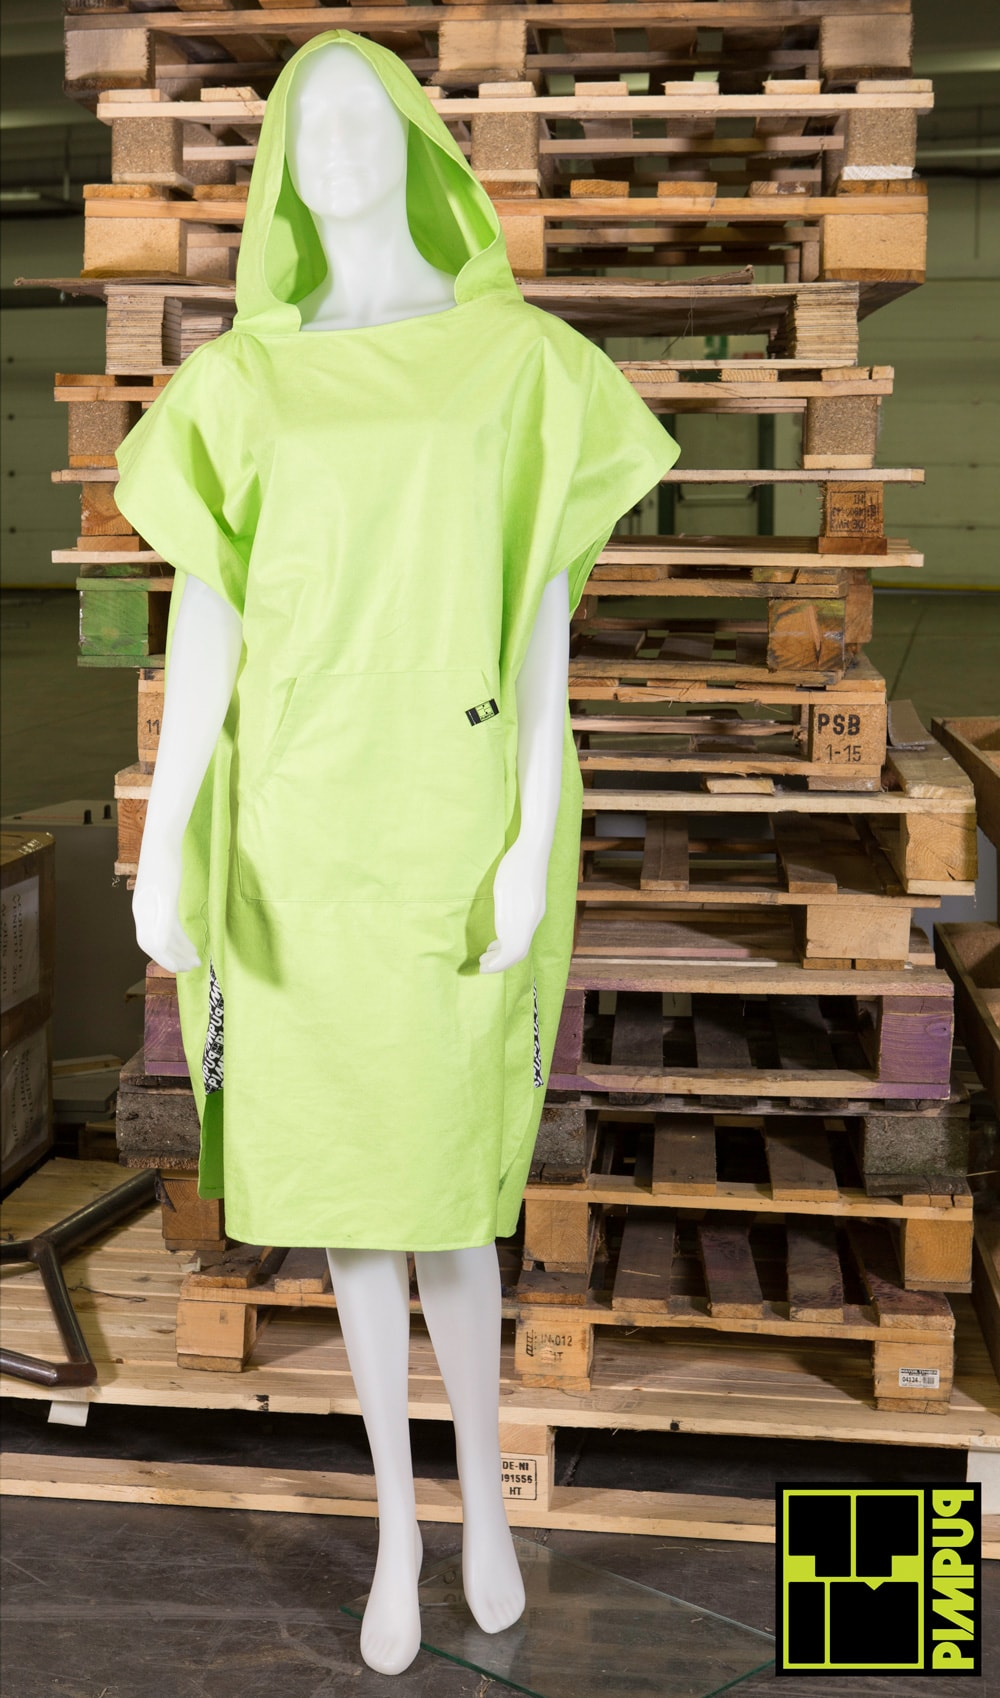 Microfiber DrySecc Poncho GREENERY for outdoor and water sport